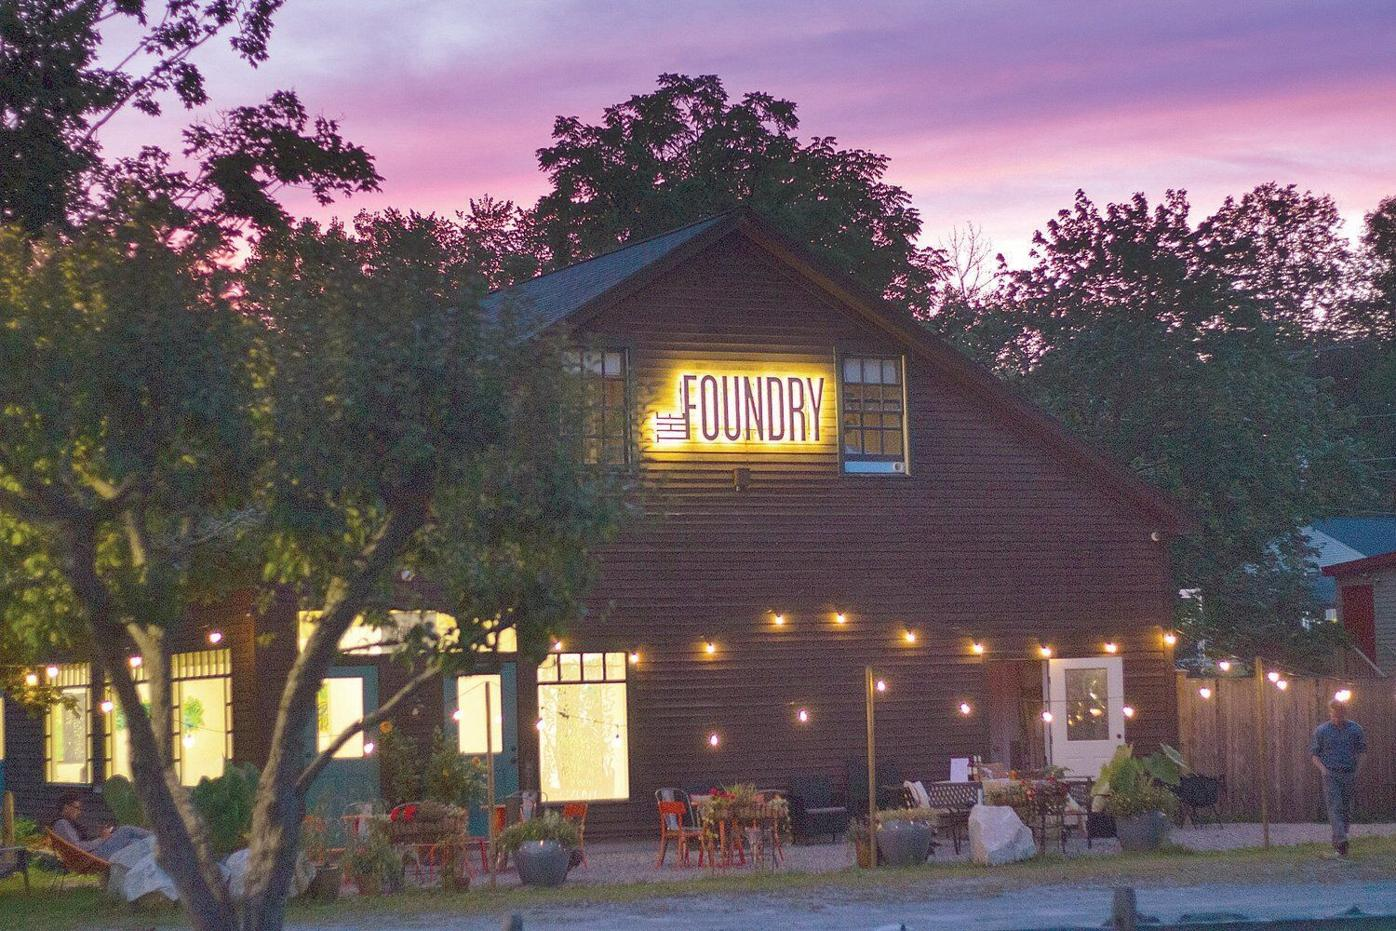 The Foundry: Happy one-year anniversary to a 'happening spot'